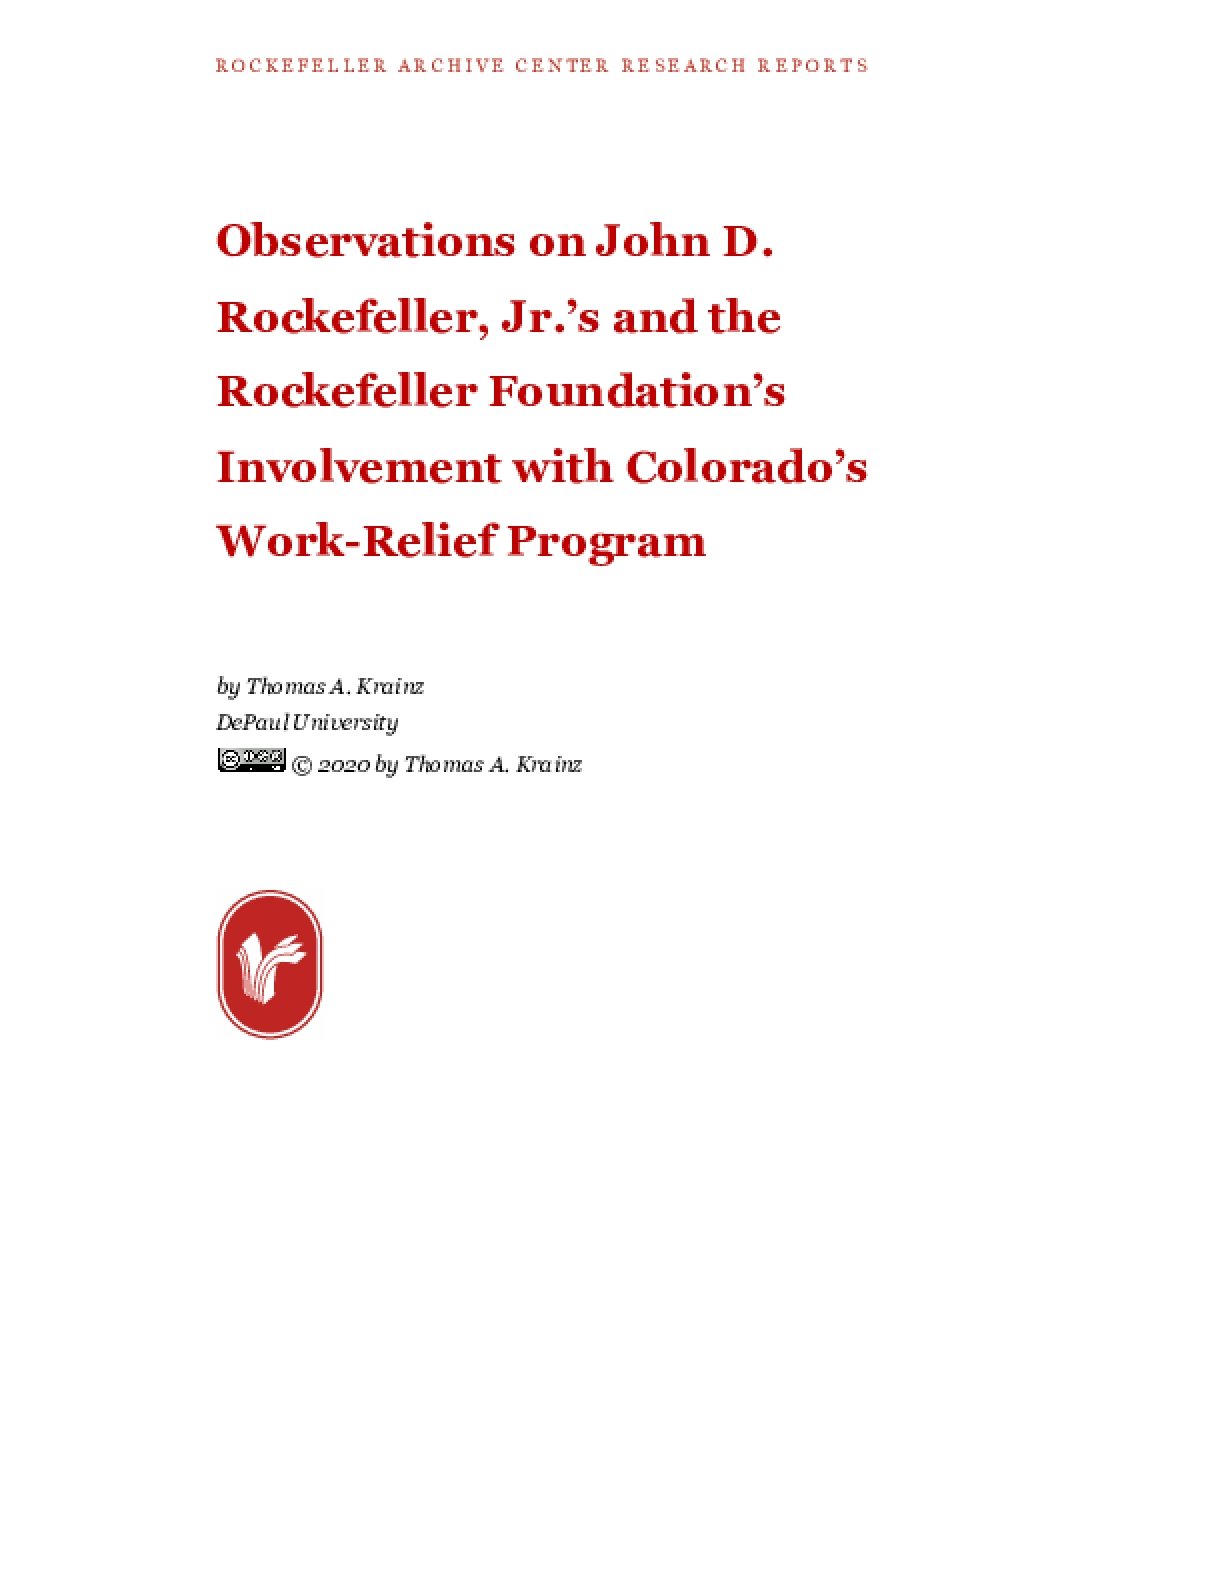 Observations on John D. Rockefeller, Jr.'s and the Rockefeller Foundation's Involvement with Colorado's Work-Relief Program